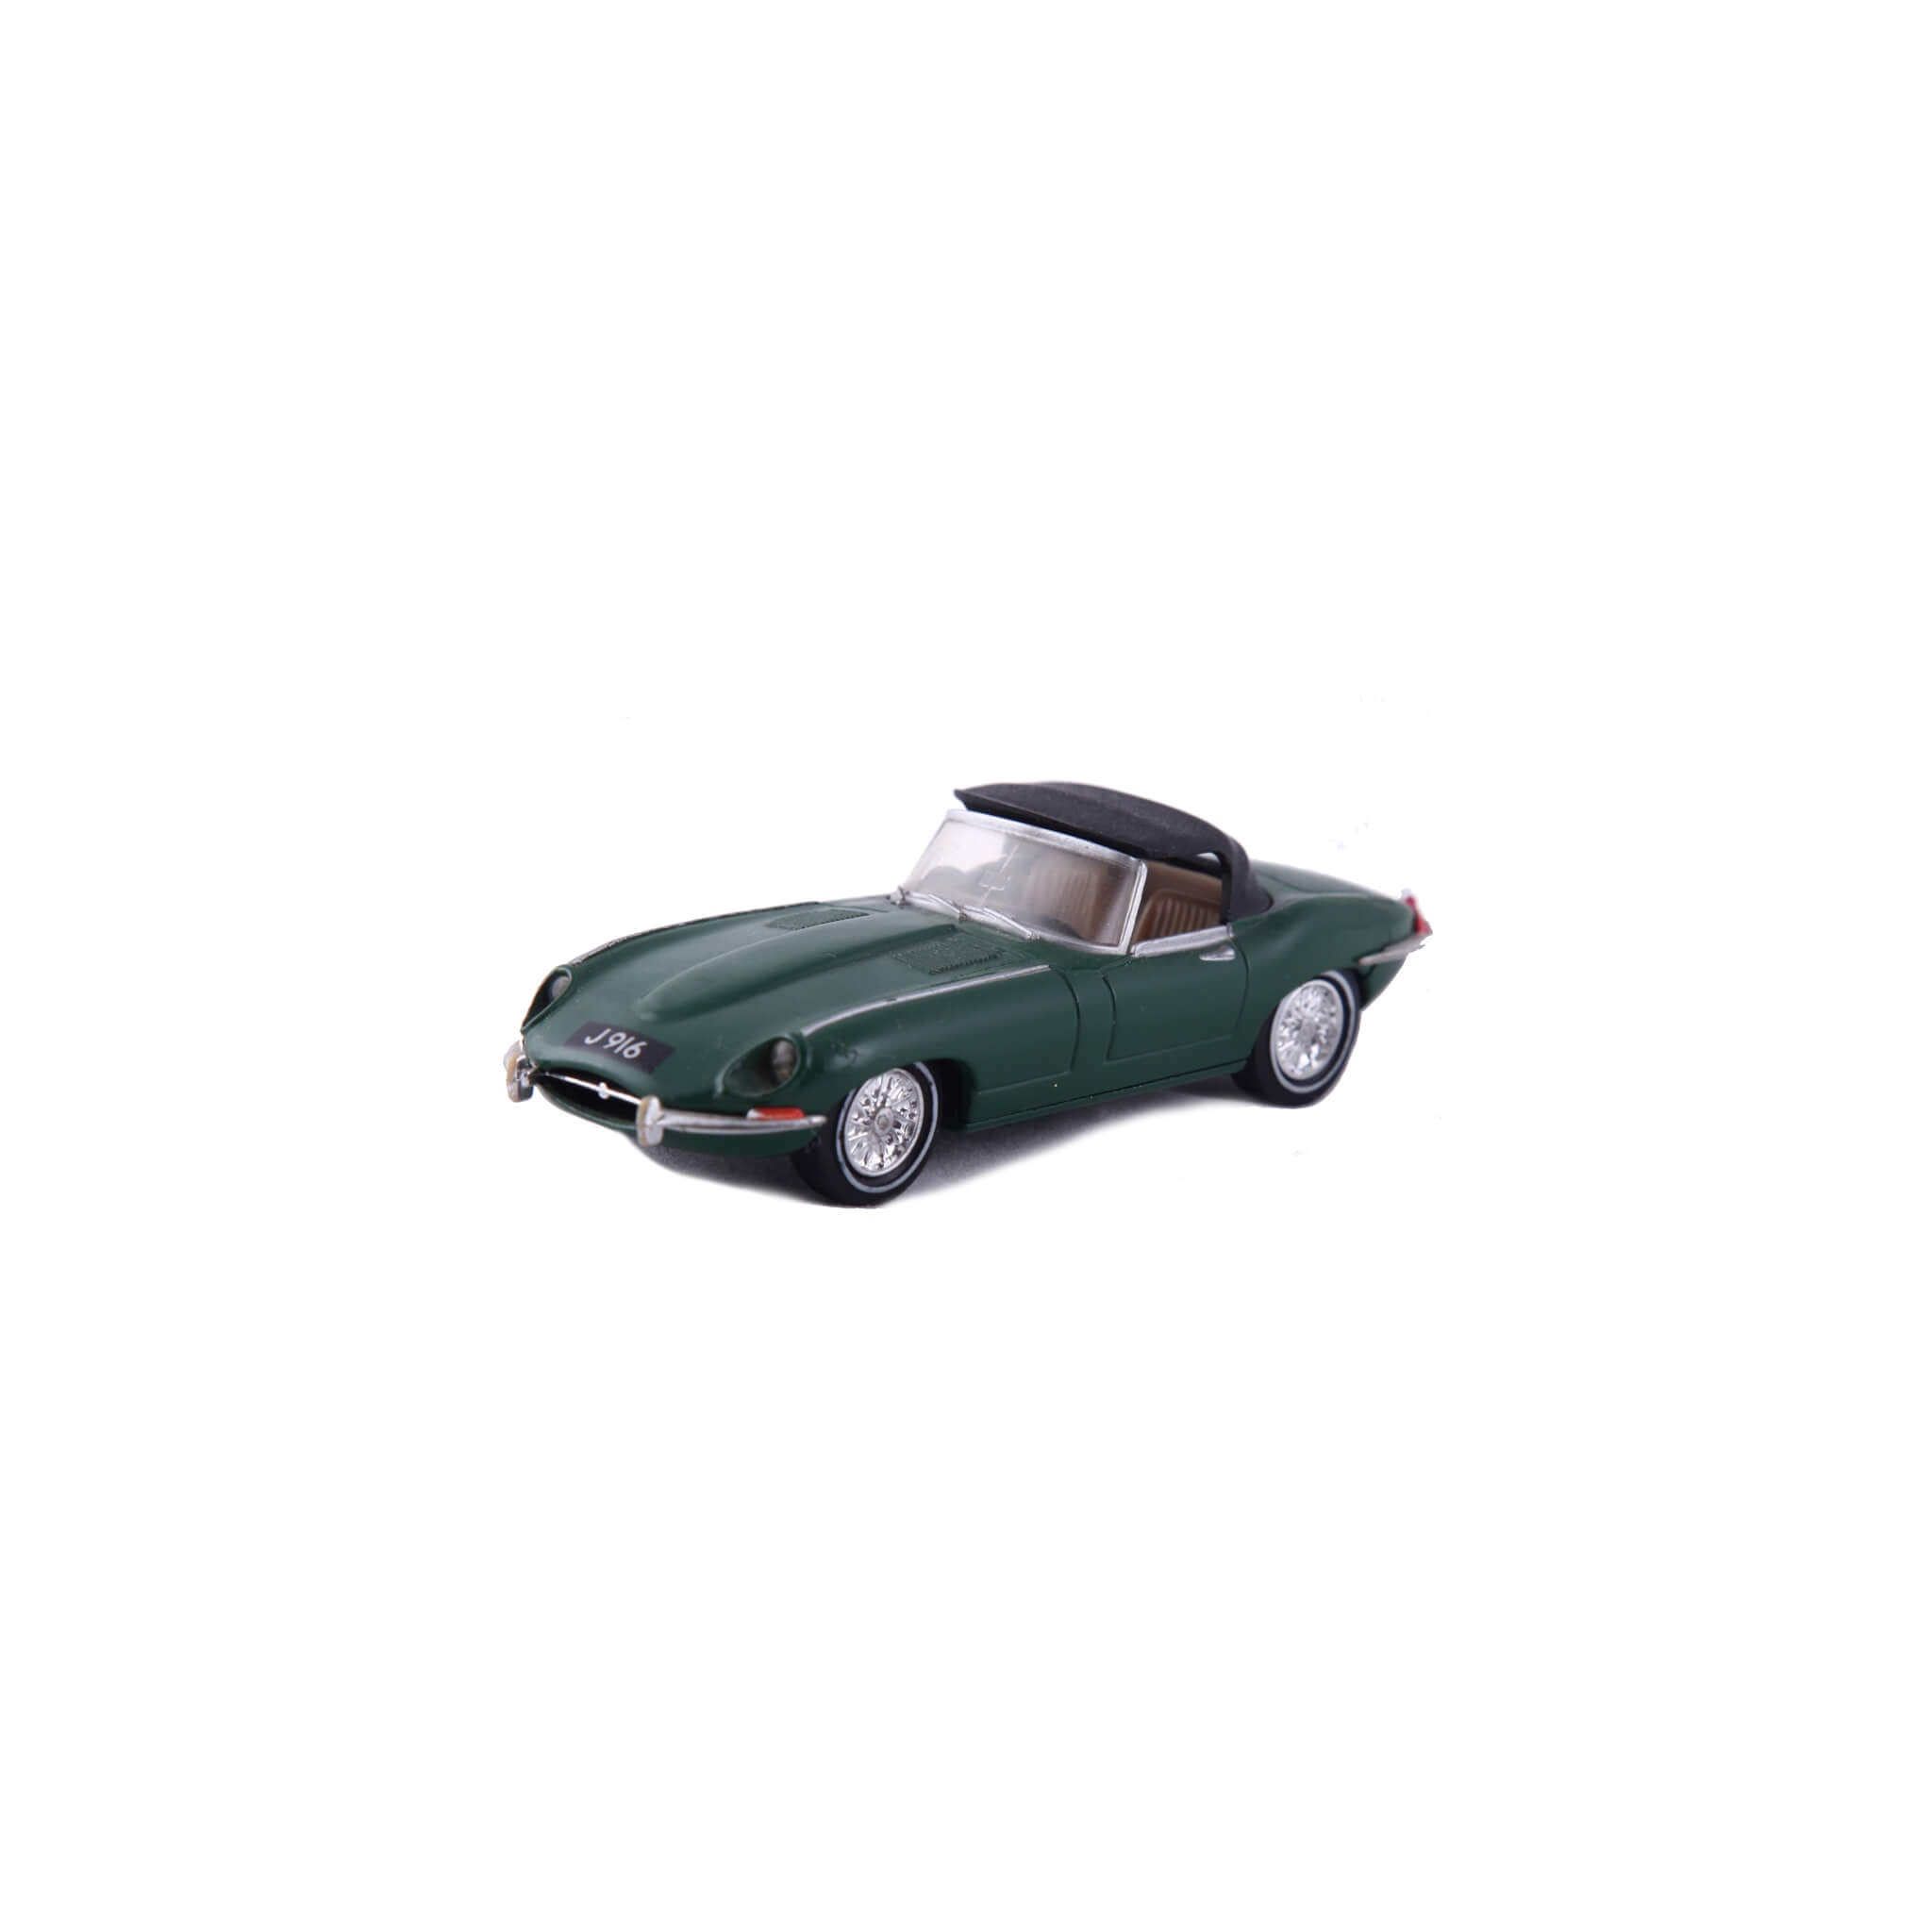 1964 Jaguar E-Type S1.5 Roadster 1:43 Model By Dinky Matchbox Model